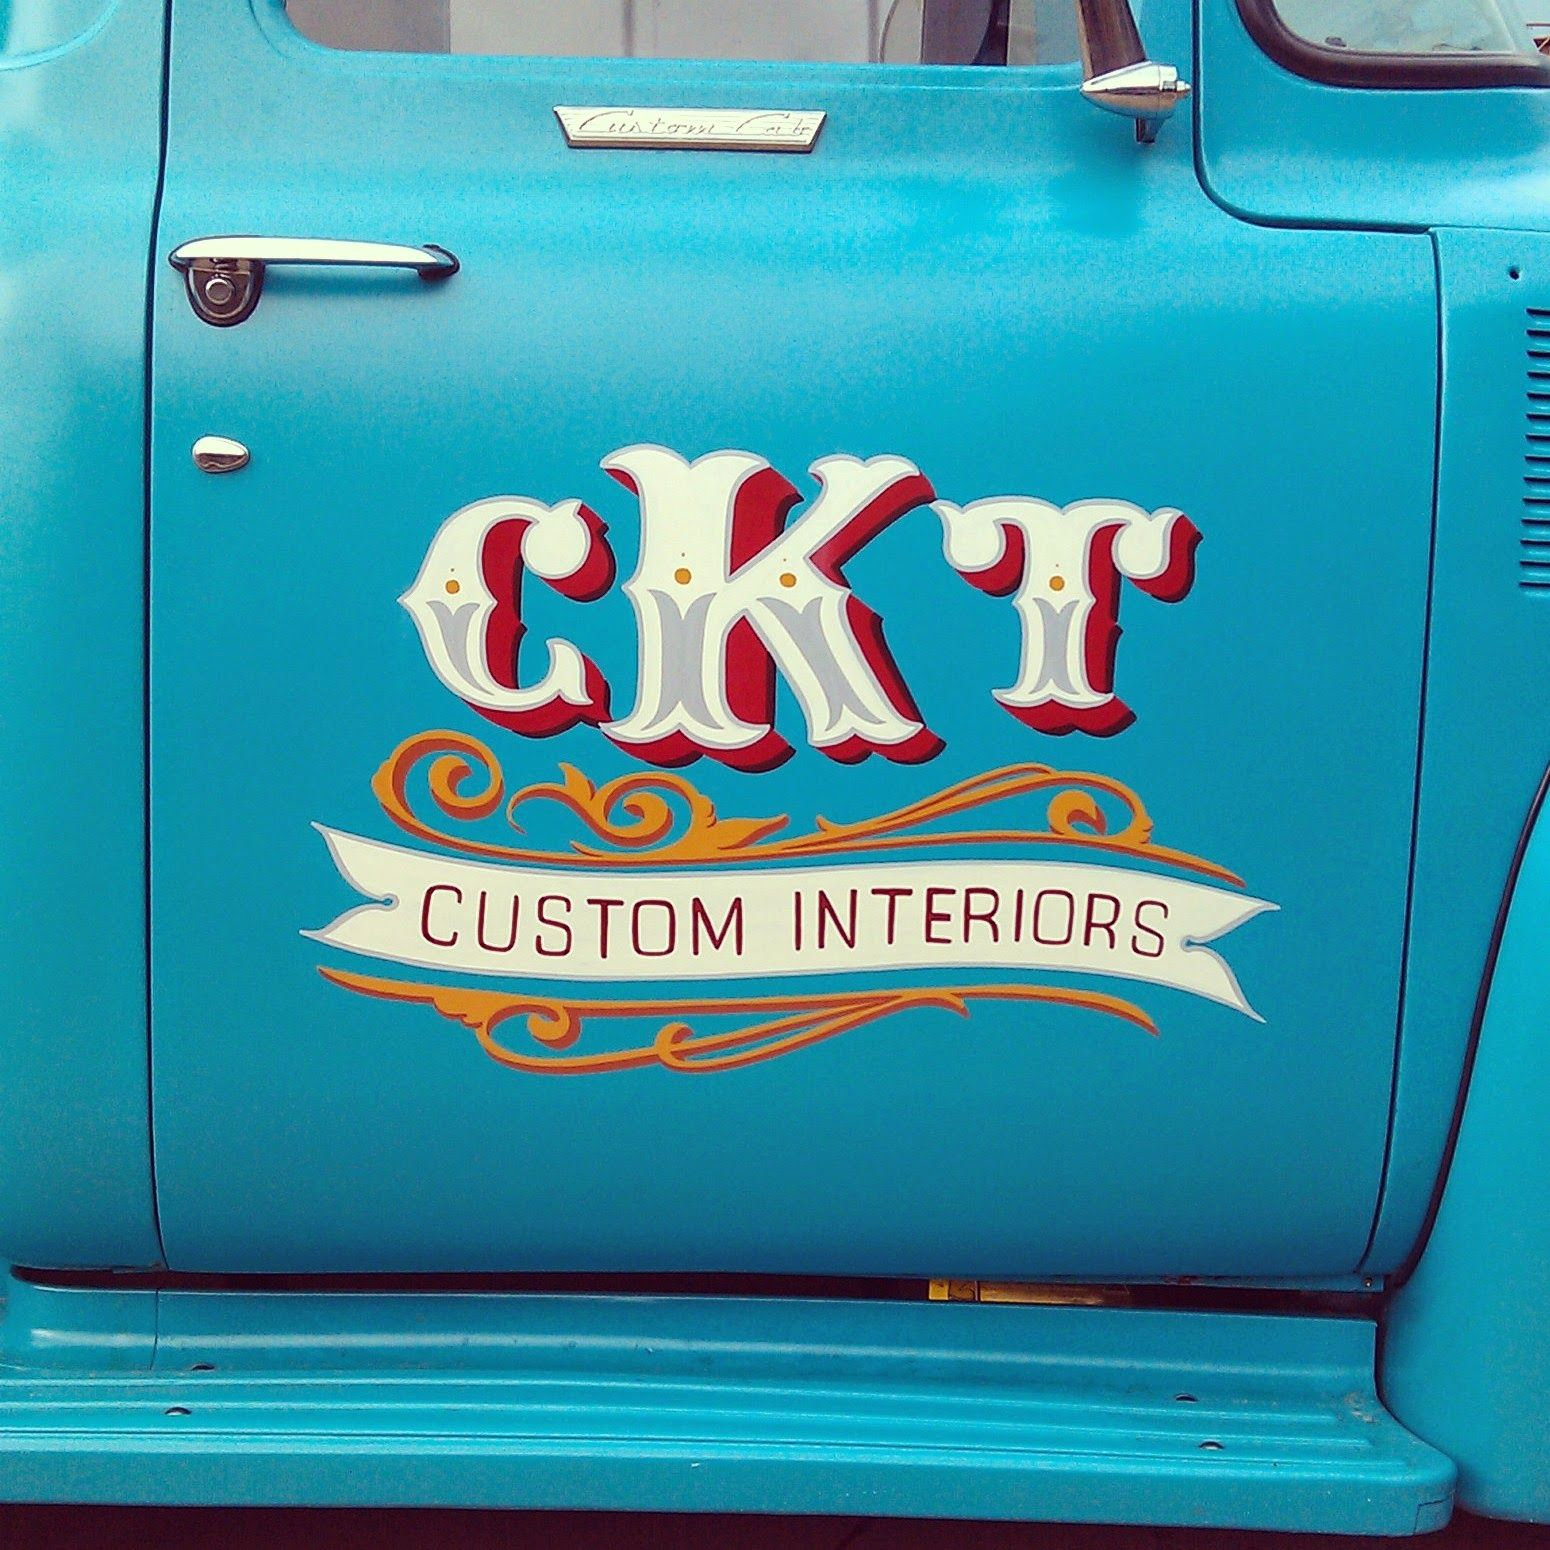 Ckt pick up signs sign writing truck lettering